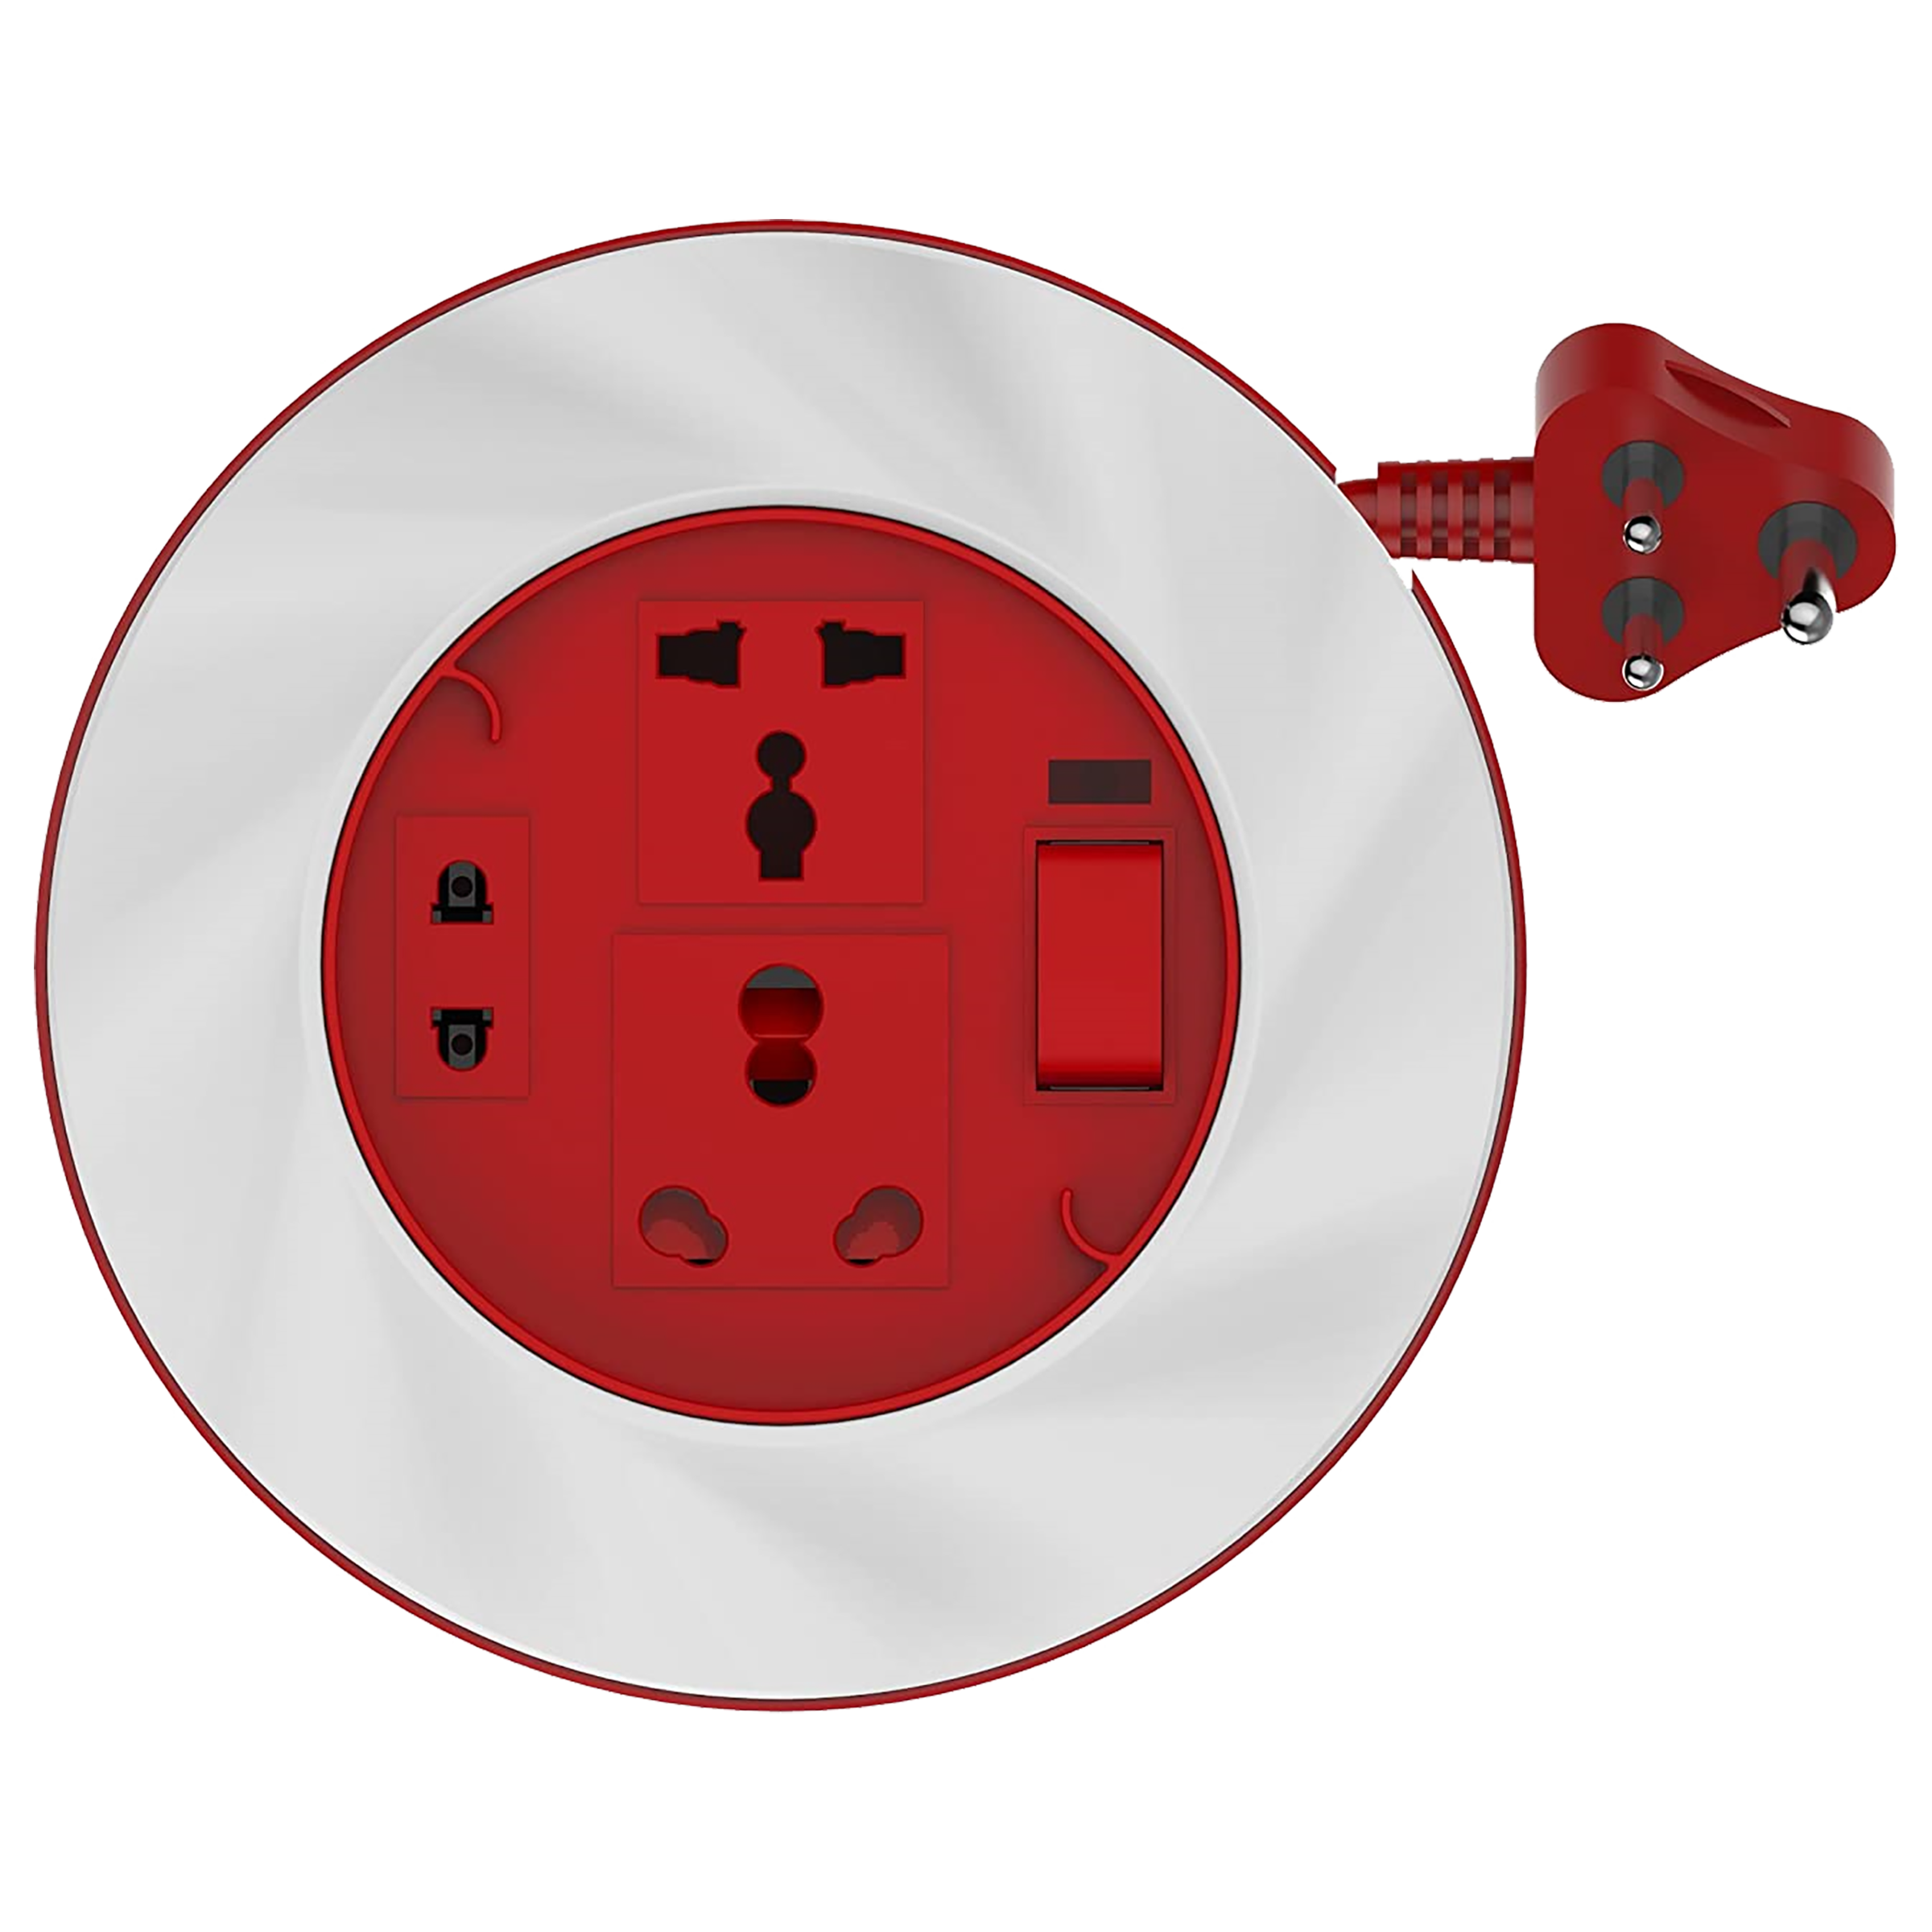 Goldmedal Twister 16 Amp 3 Sockets Extension Board ( 3.5 Meters, International Sockets, 205131, White/Red)_1